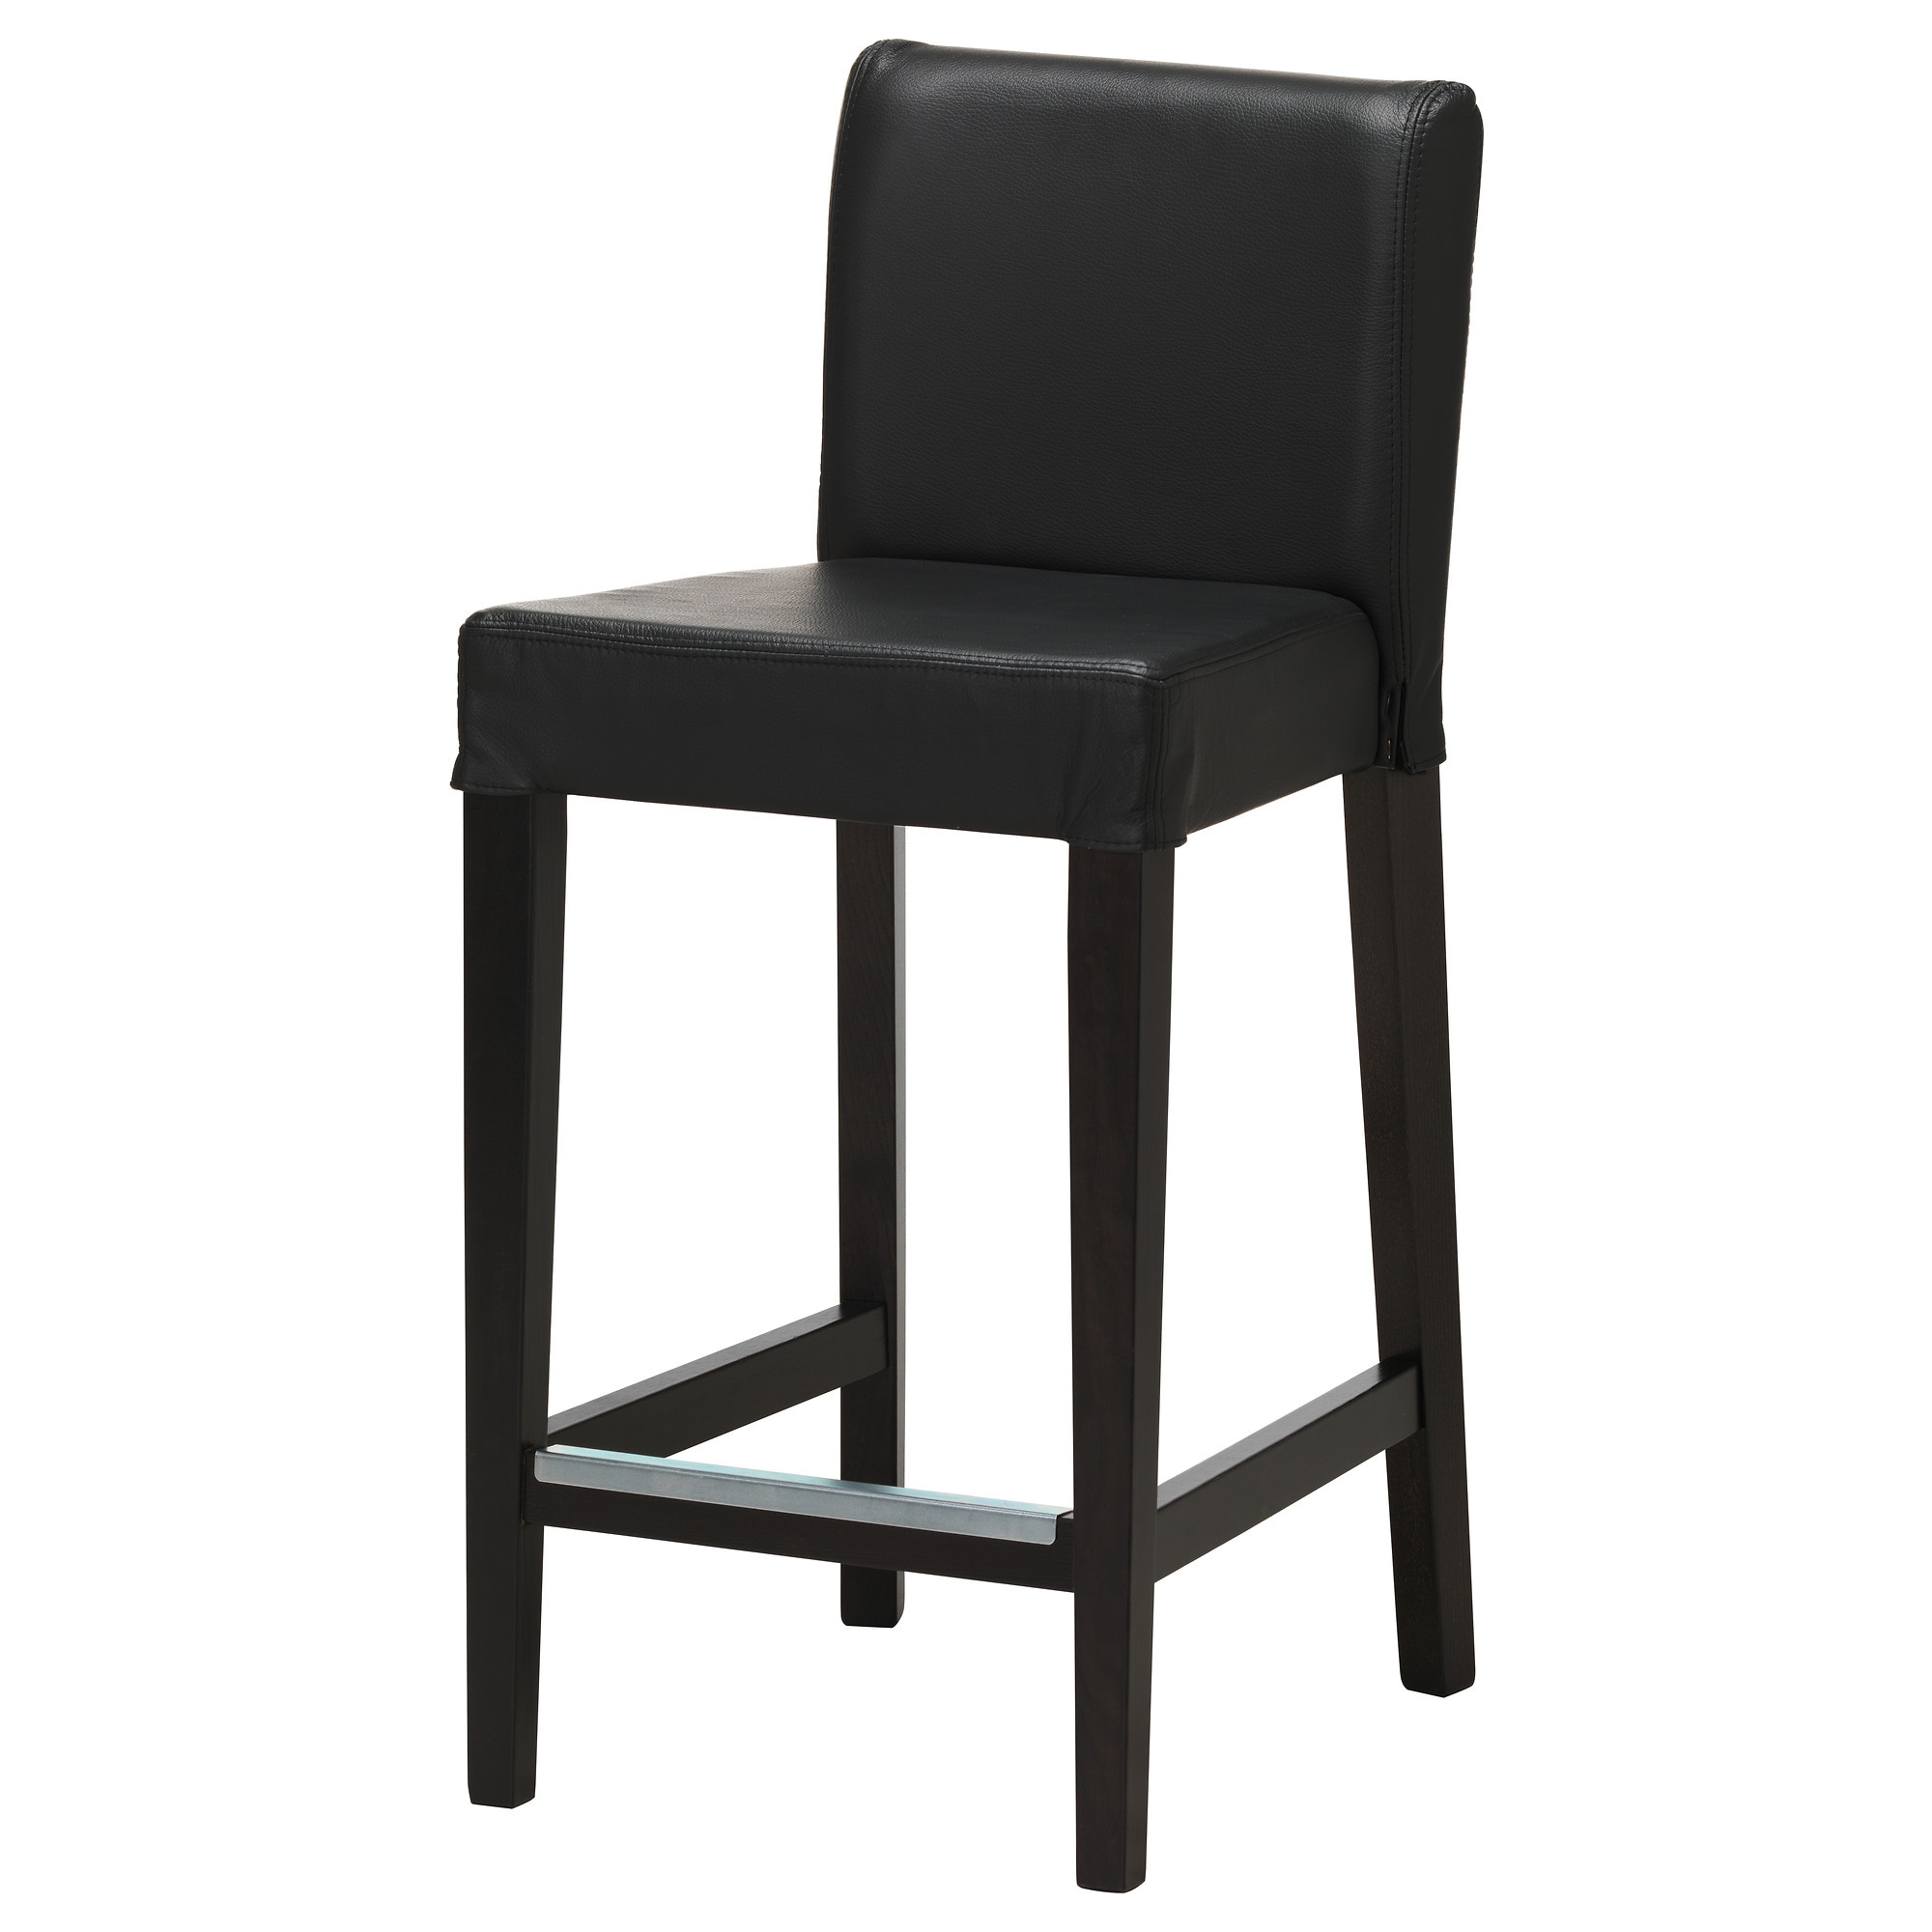 Henriksdal Bar Stool With Backrest Brown Black Glose Tested For 220